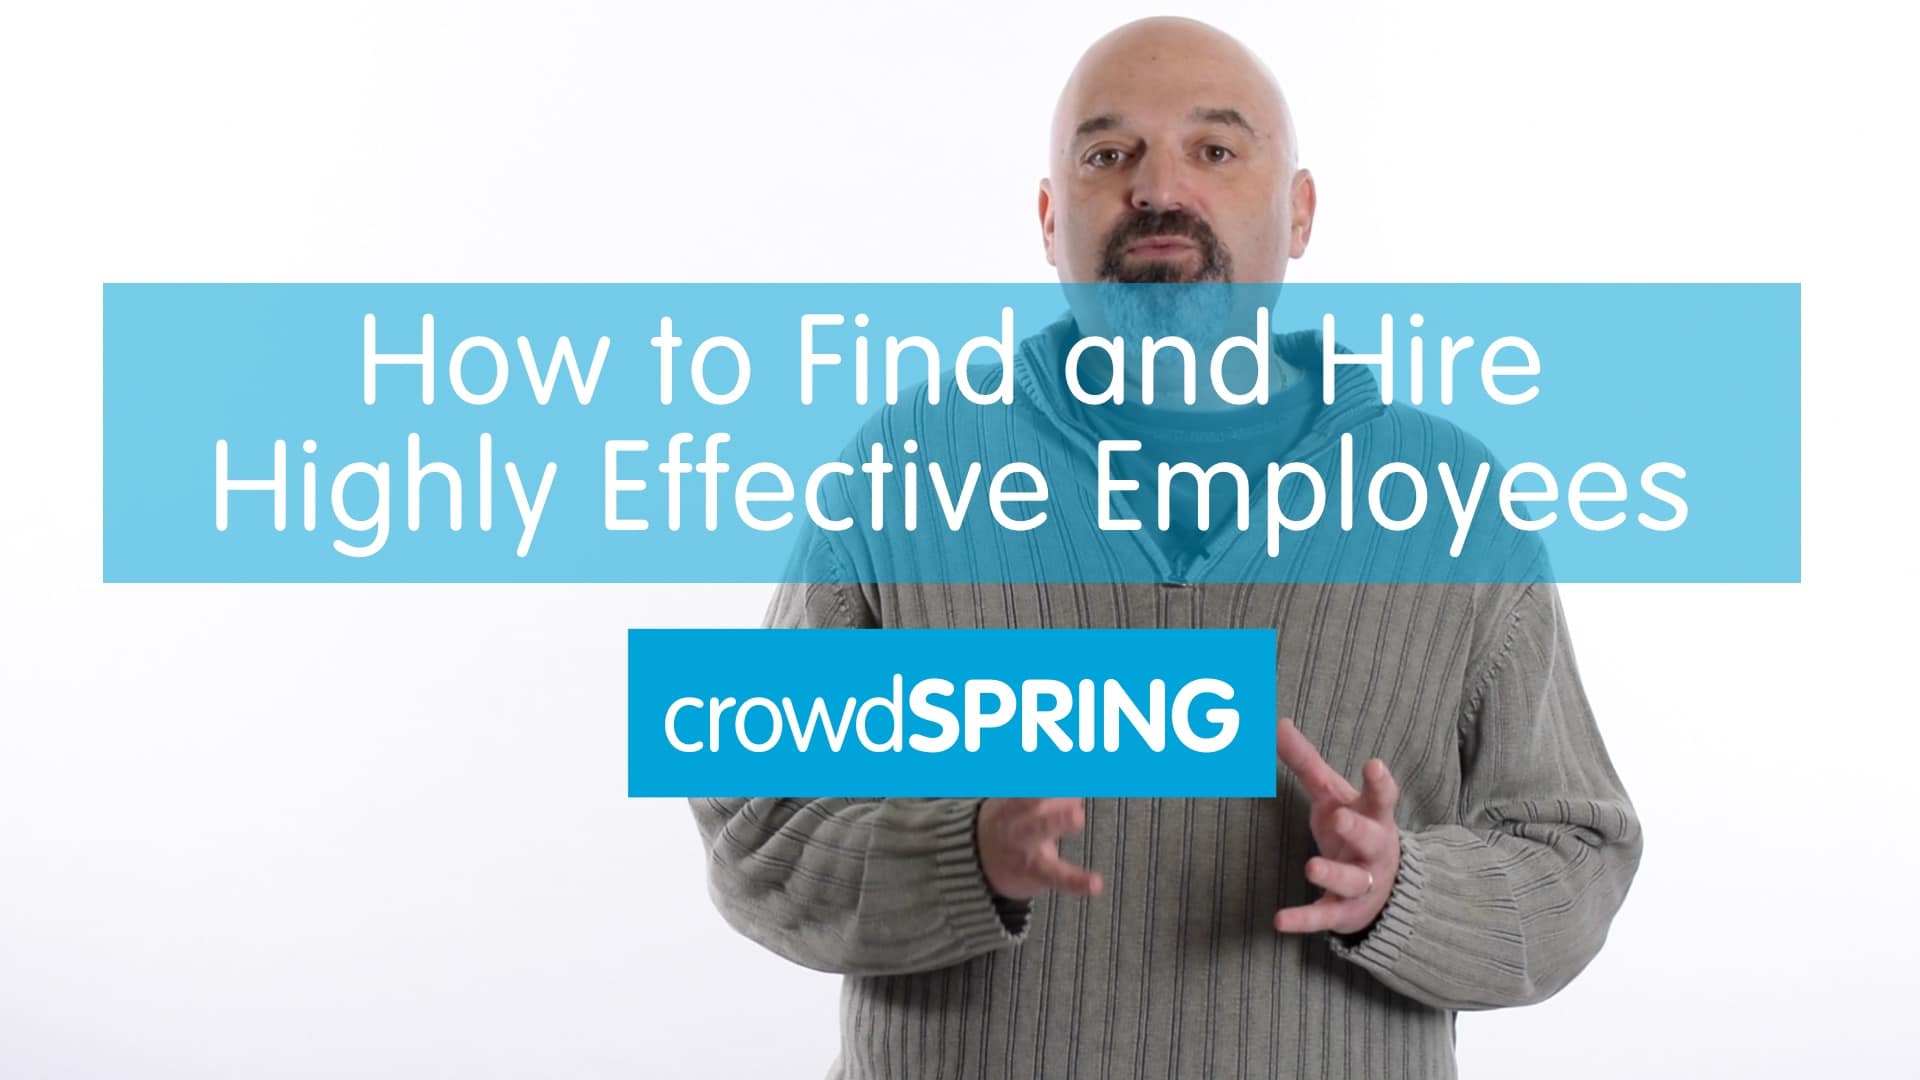 How to Find and Hire Highly Effective Employees